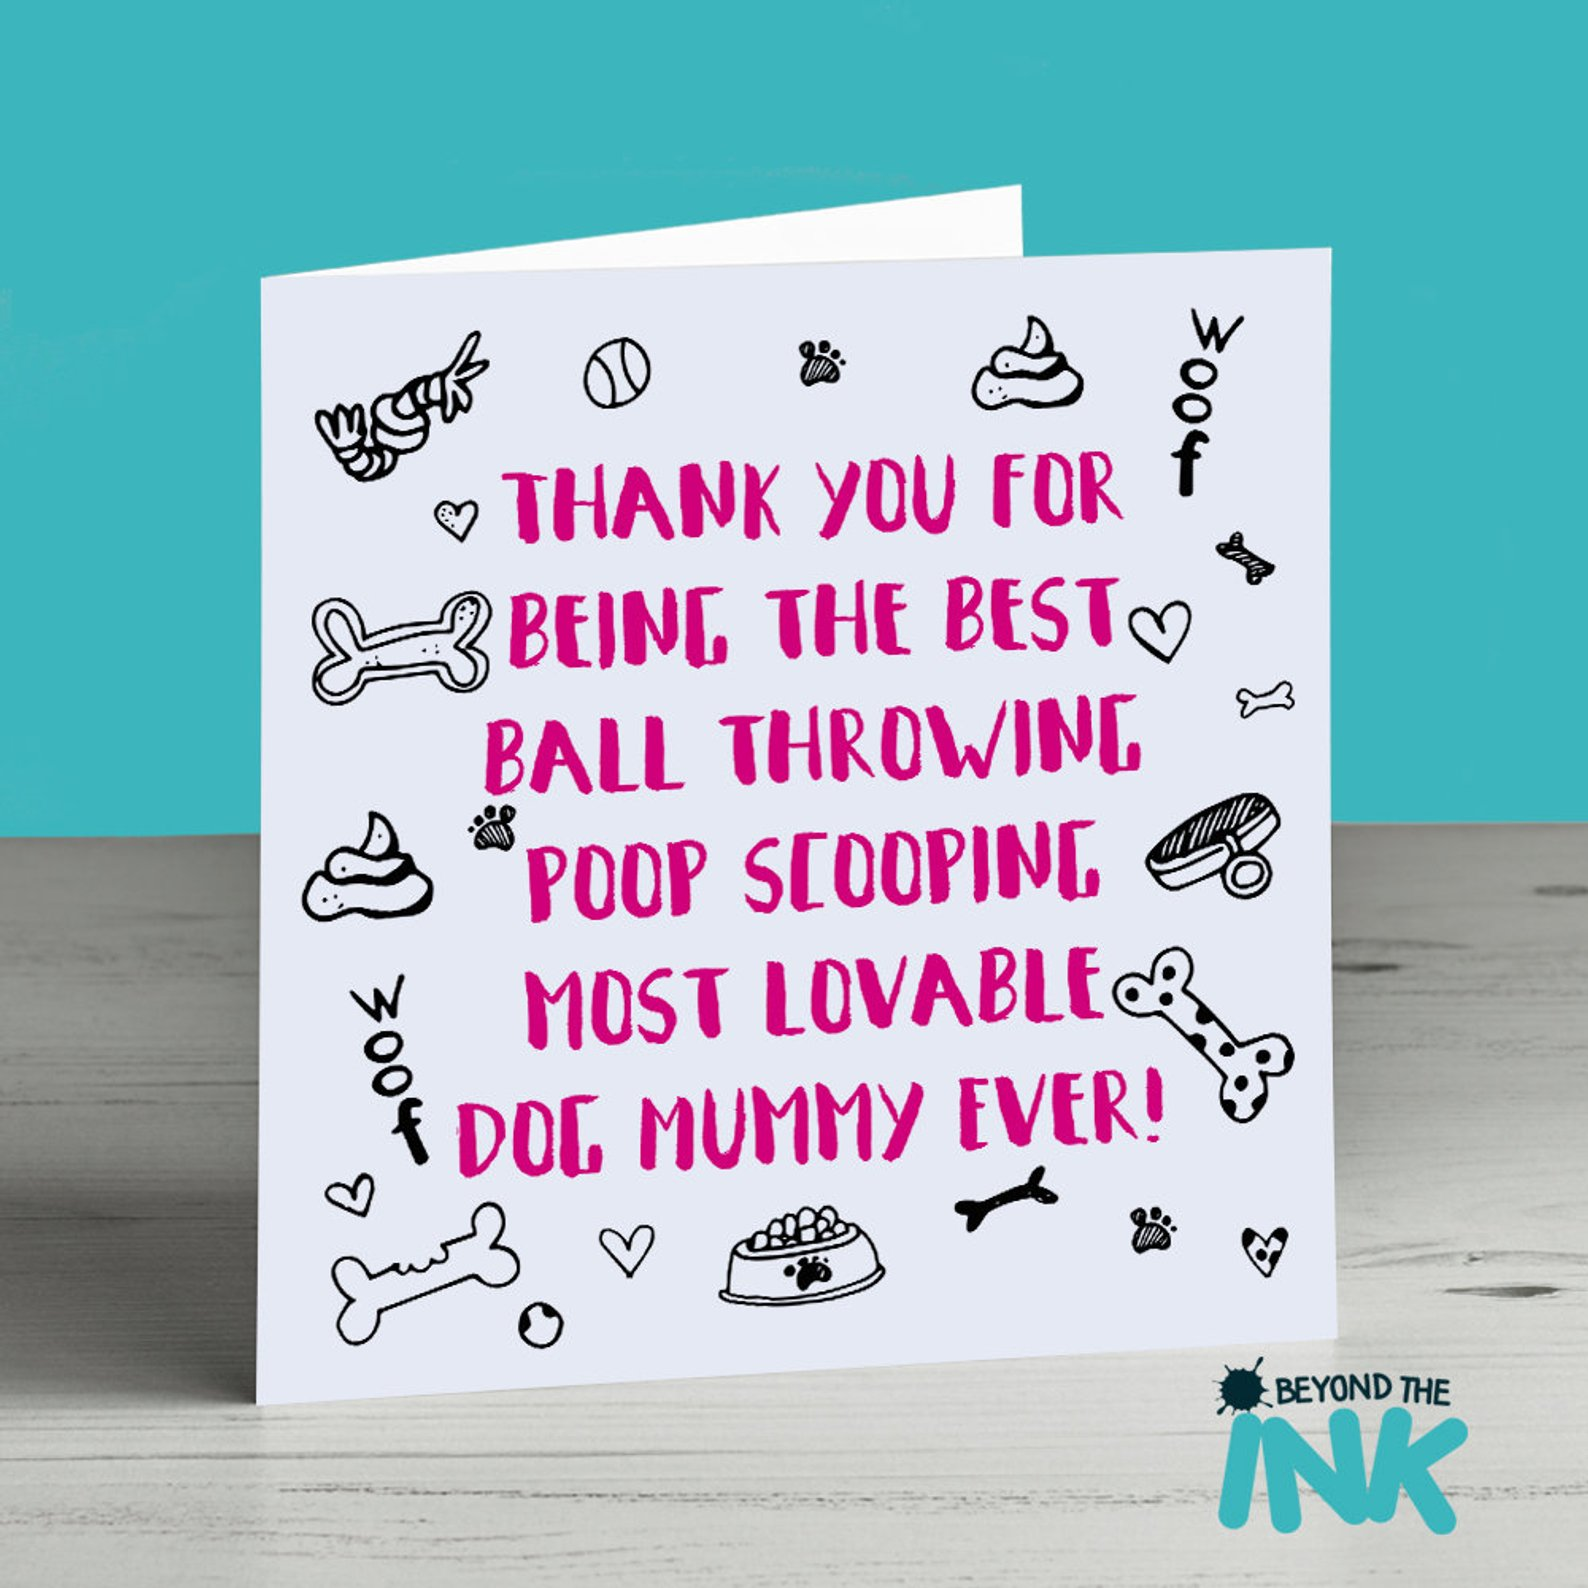 31 Mother's Day Cards for Dog Moms (And Moms Who Love Dogs) from Etsy and Other Stationary Stores